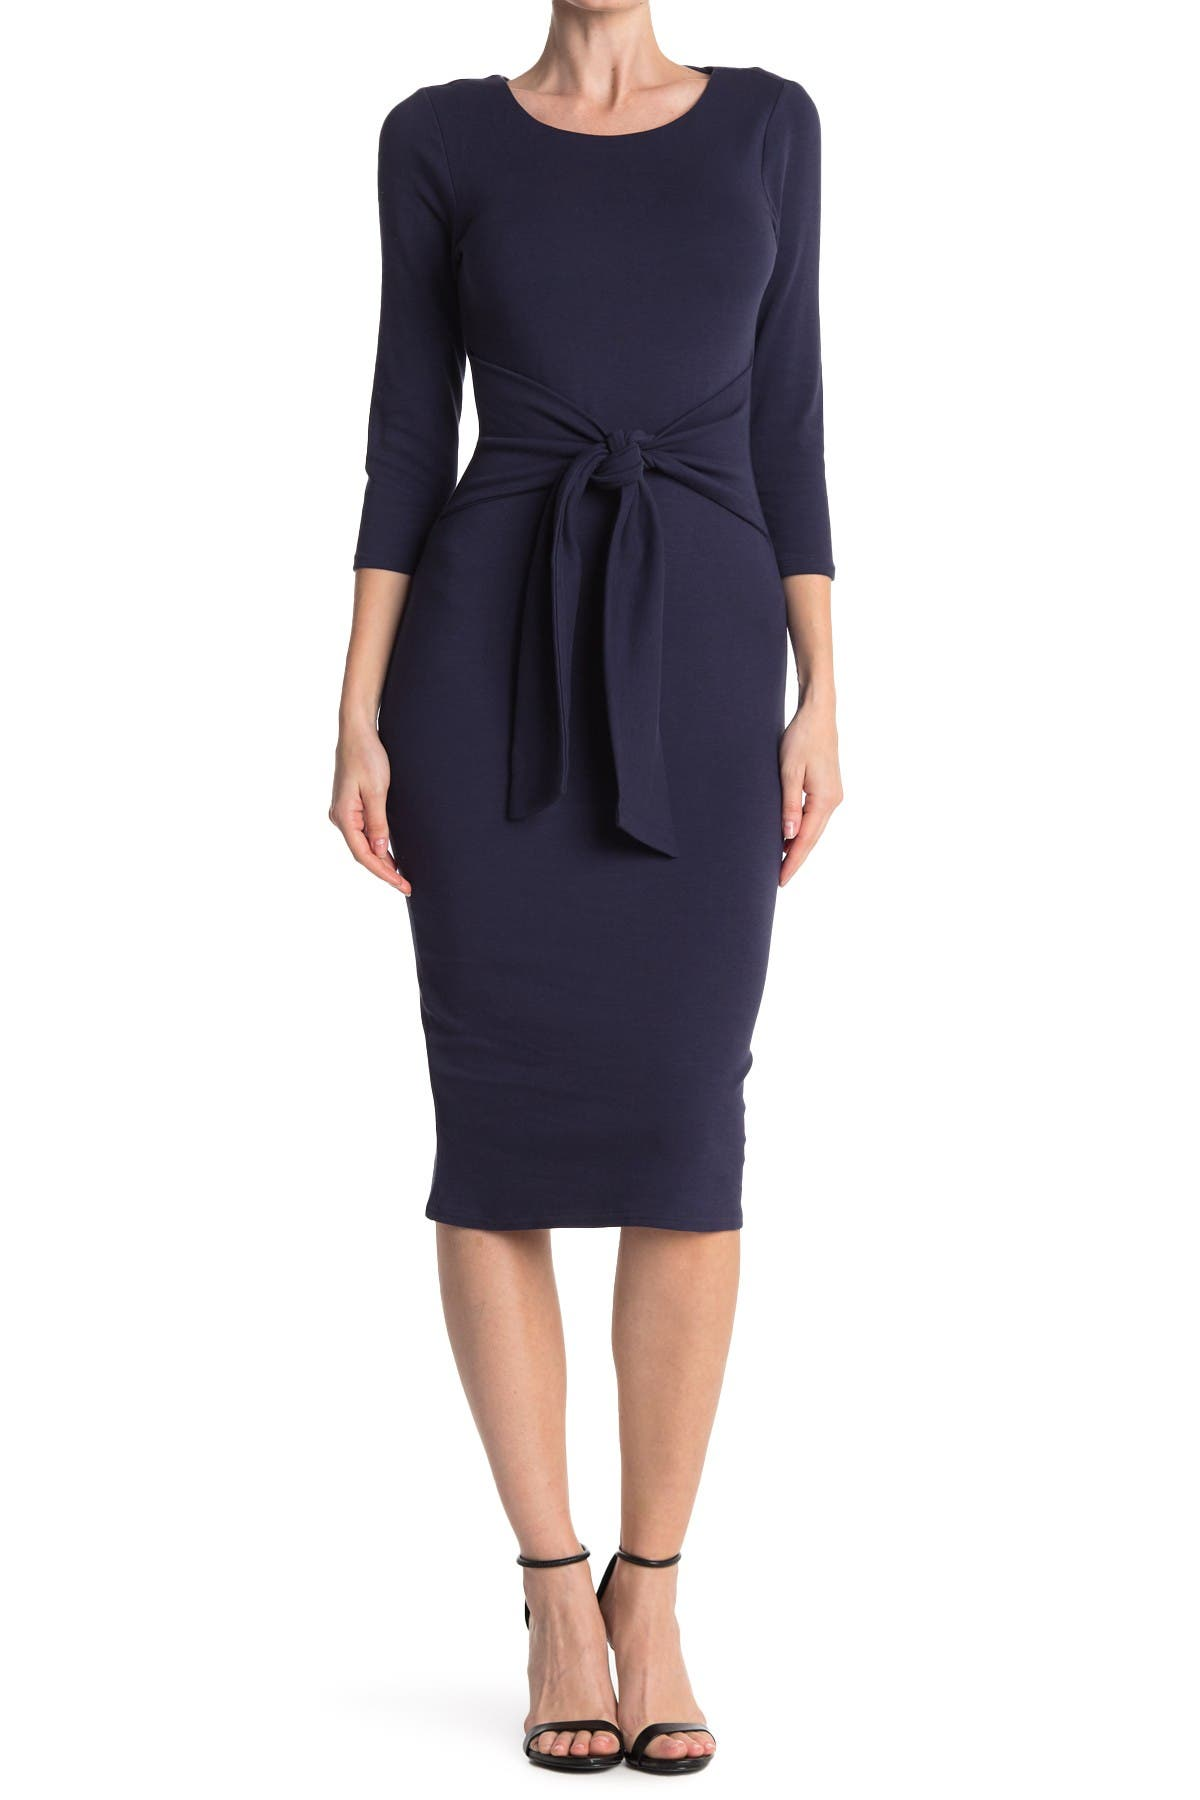 Image of MELLODAY Tie Waist 3/4 Sleeve Midi Sheath Dress